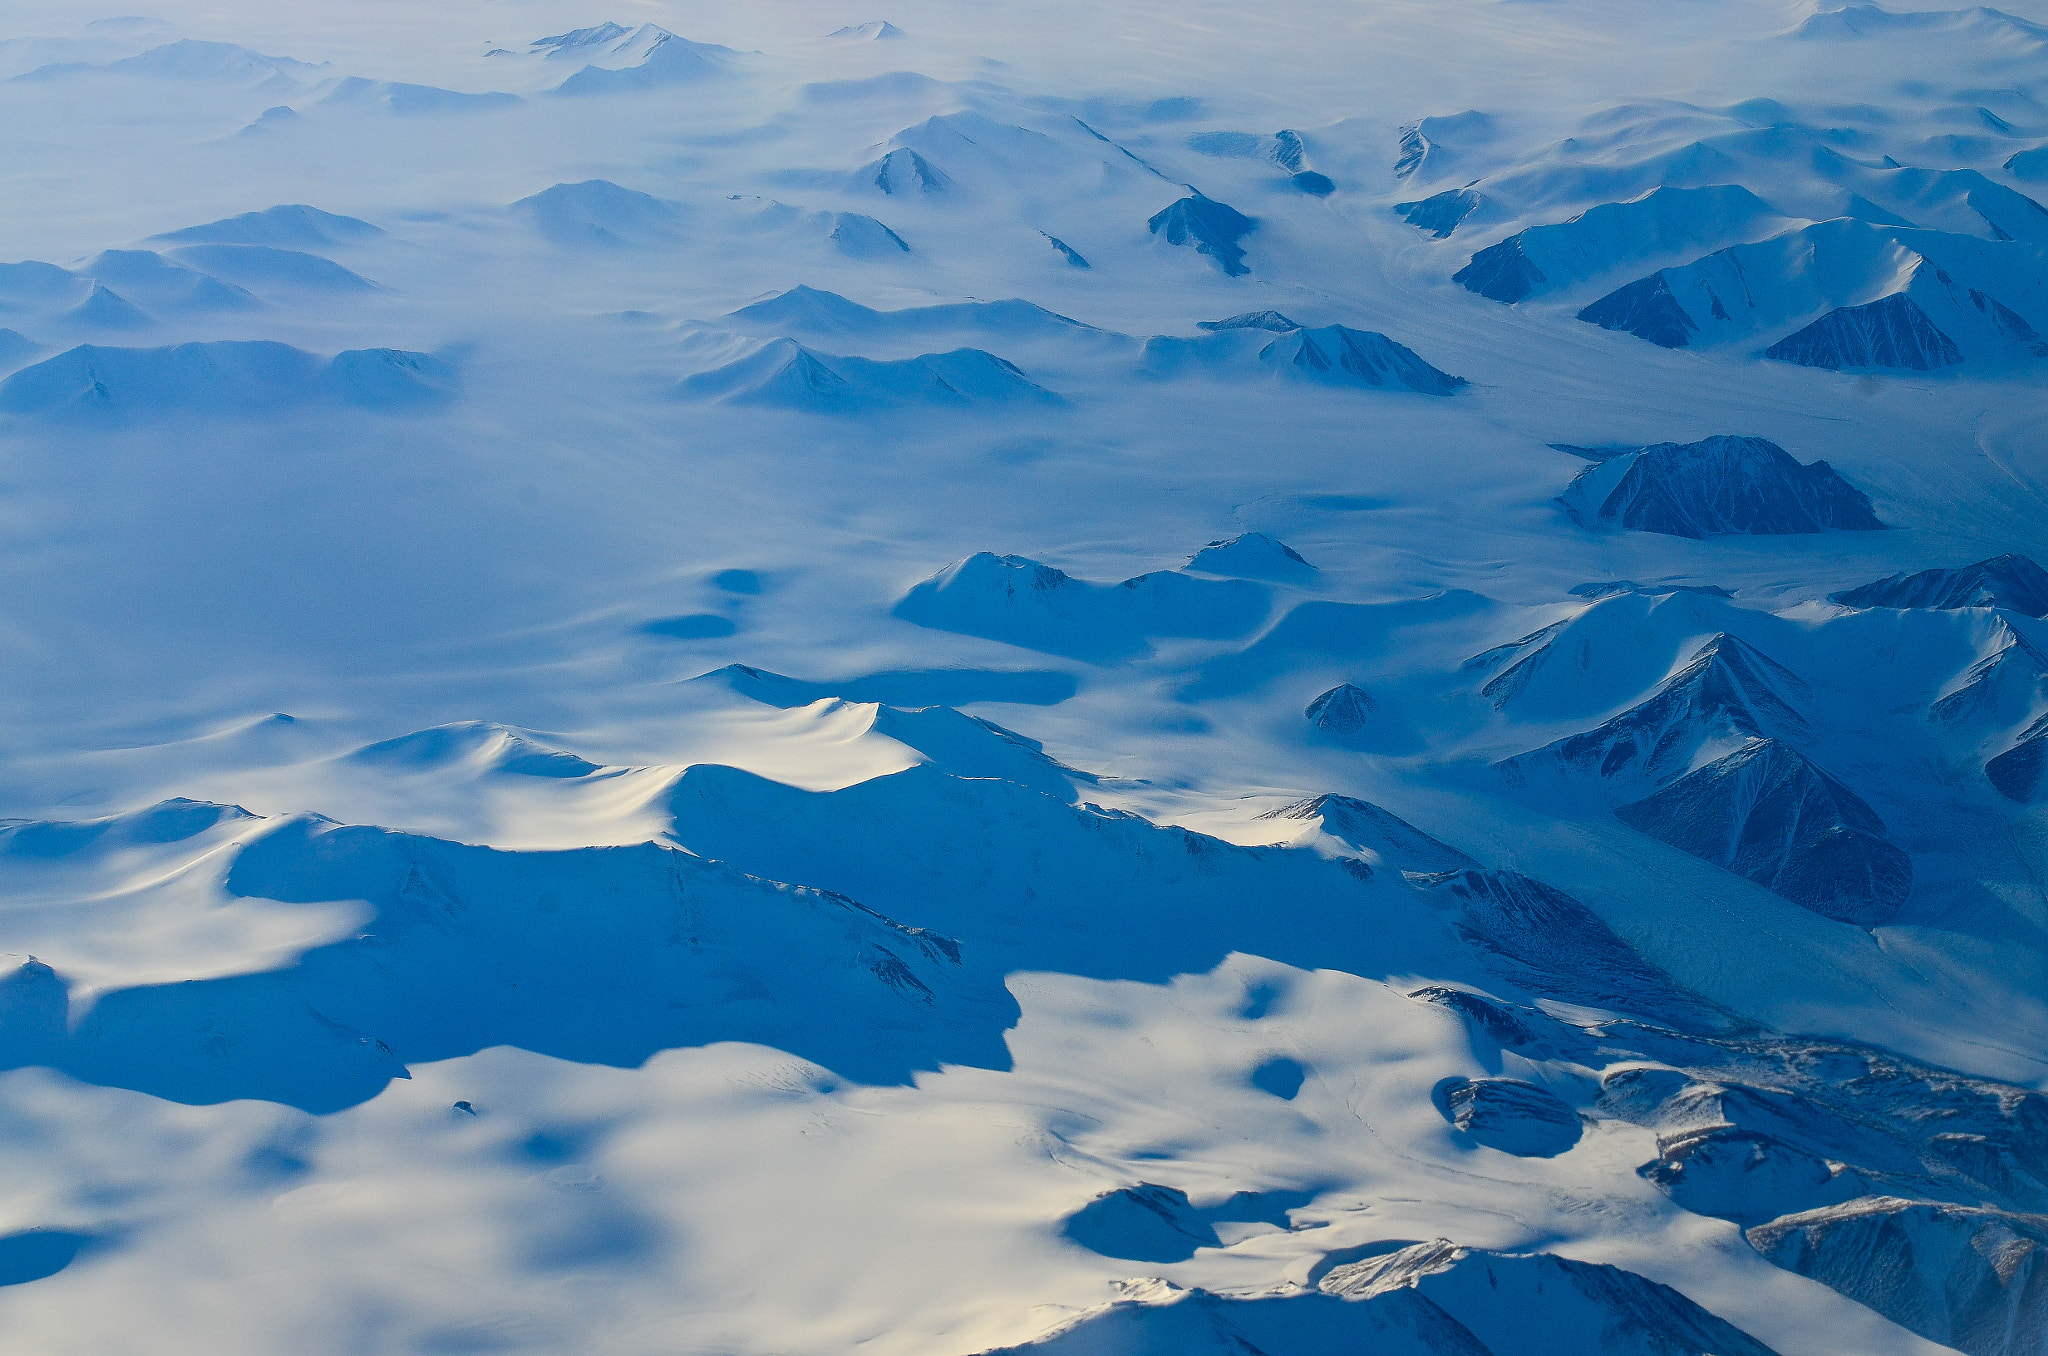 Photograph greenland by helmut flatscher on 500px